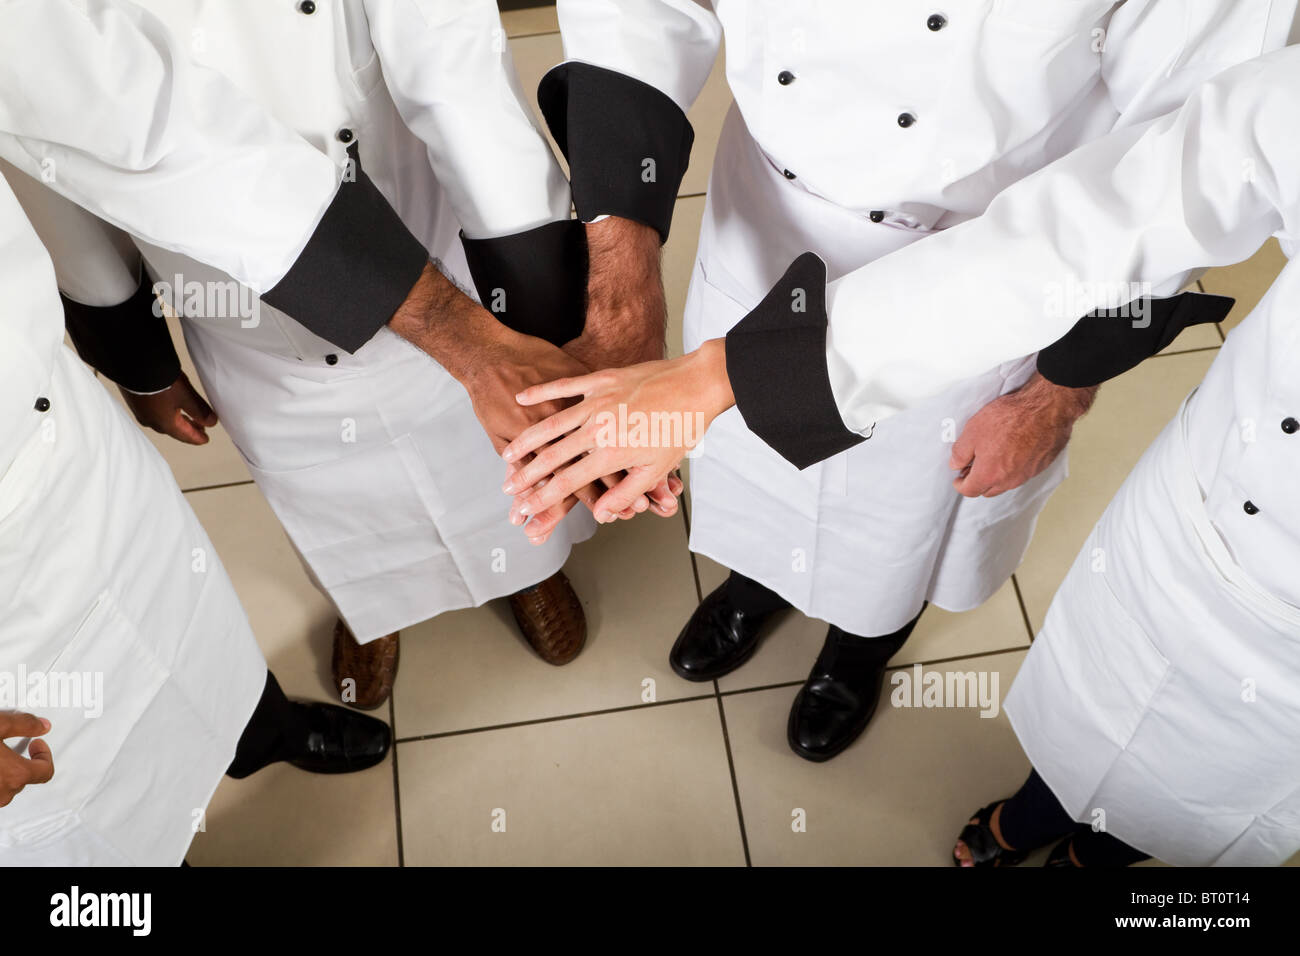 professional chef teamwork - Stock Image